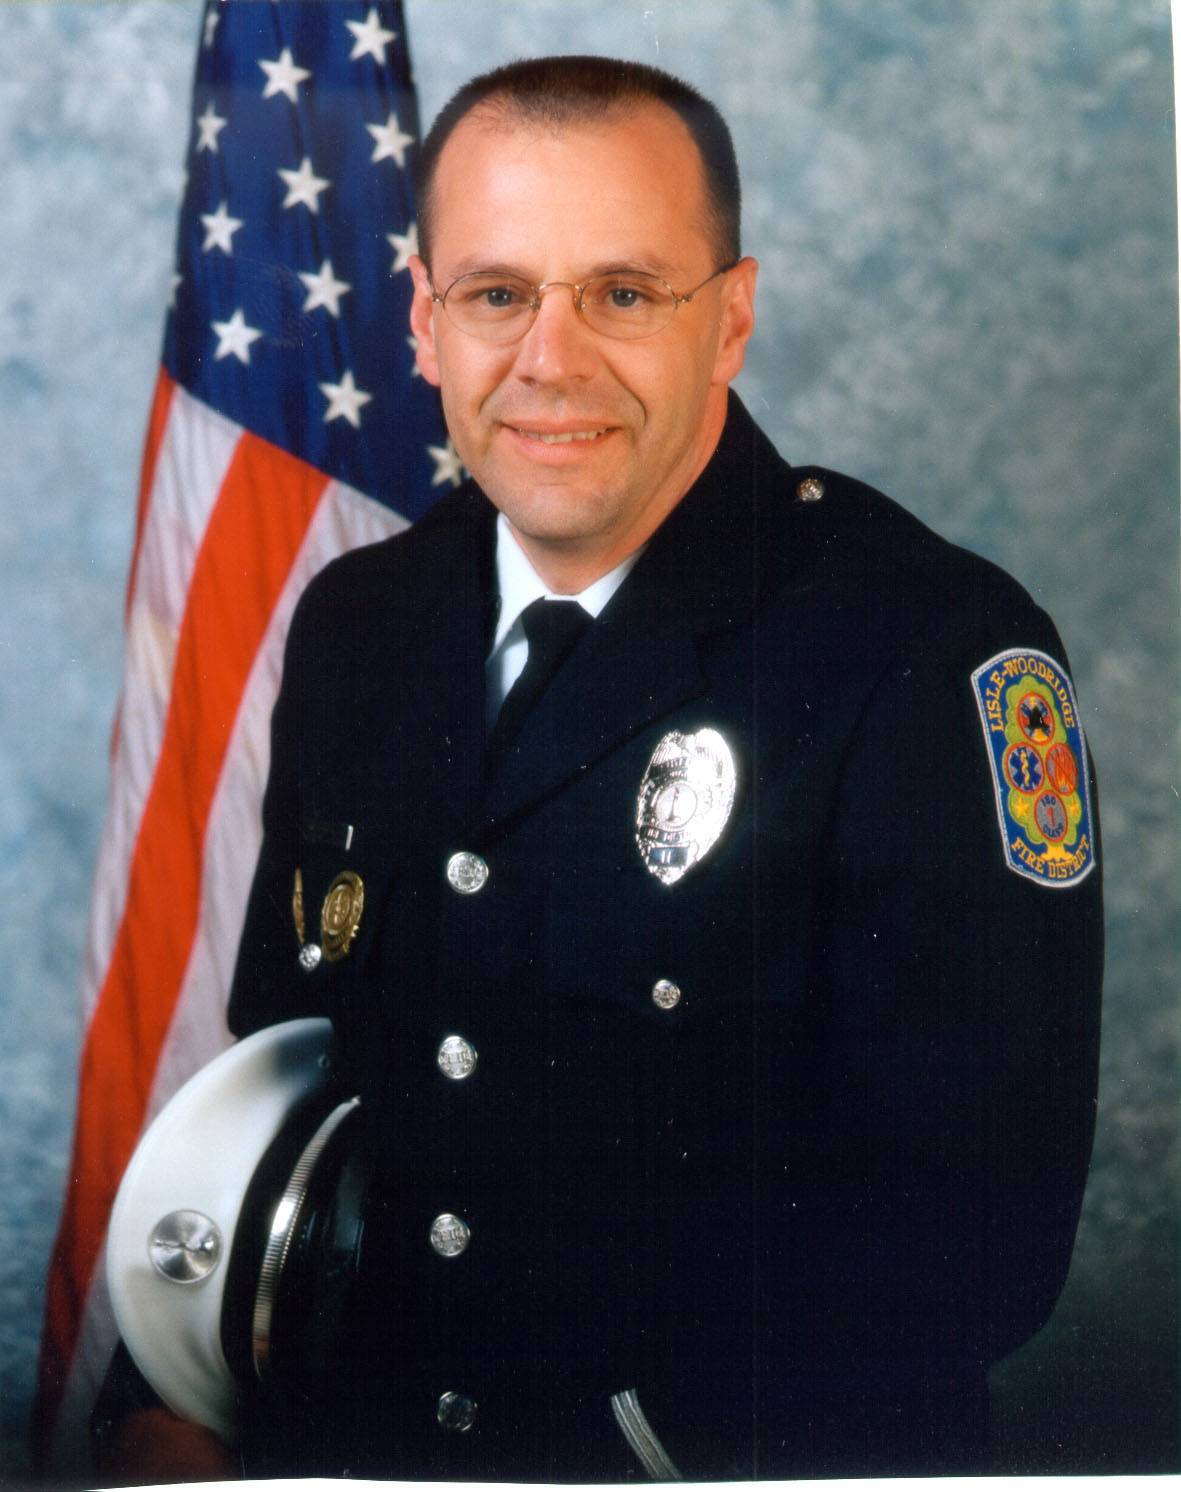 This is Keith Stegman, a Lisle-Woodridge Fire District EMT.